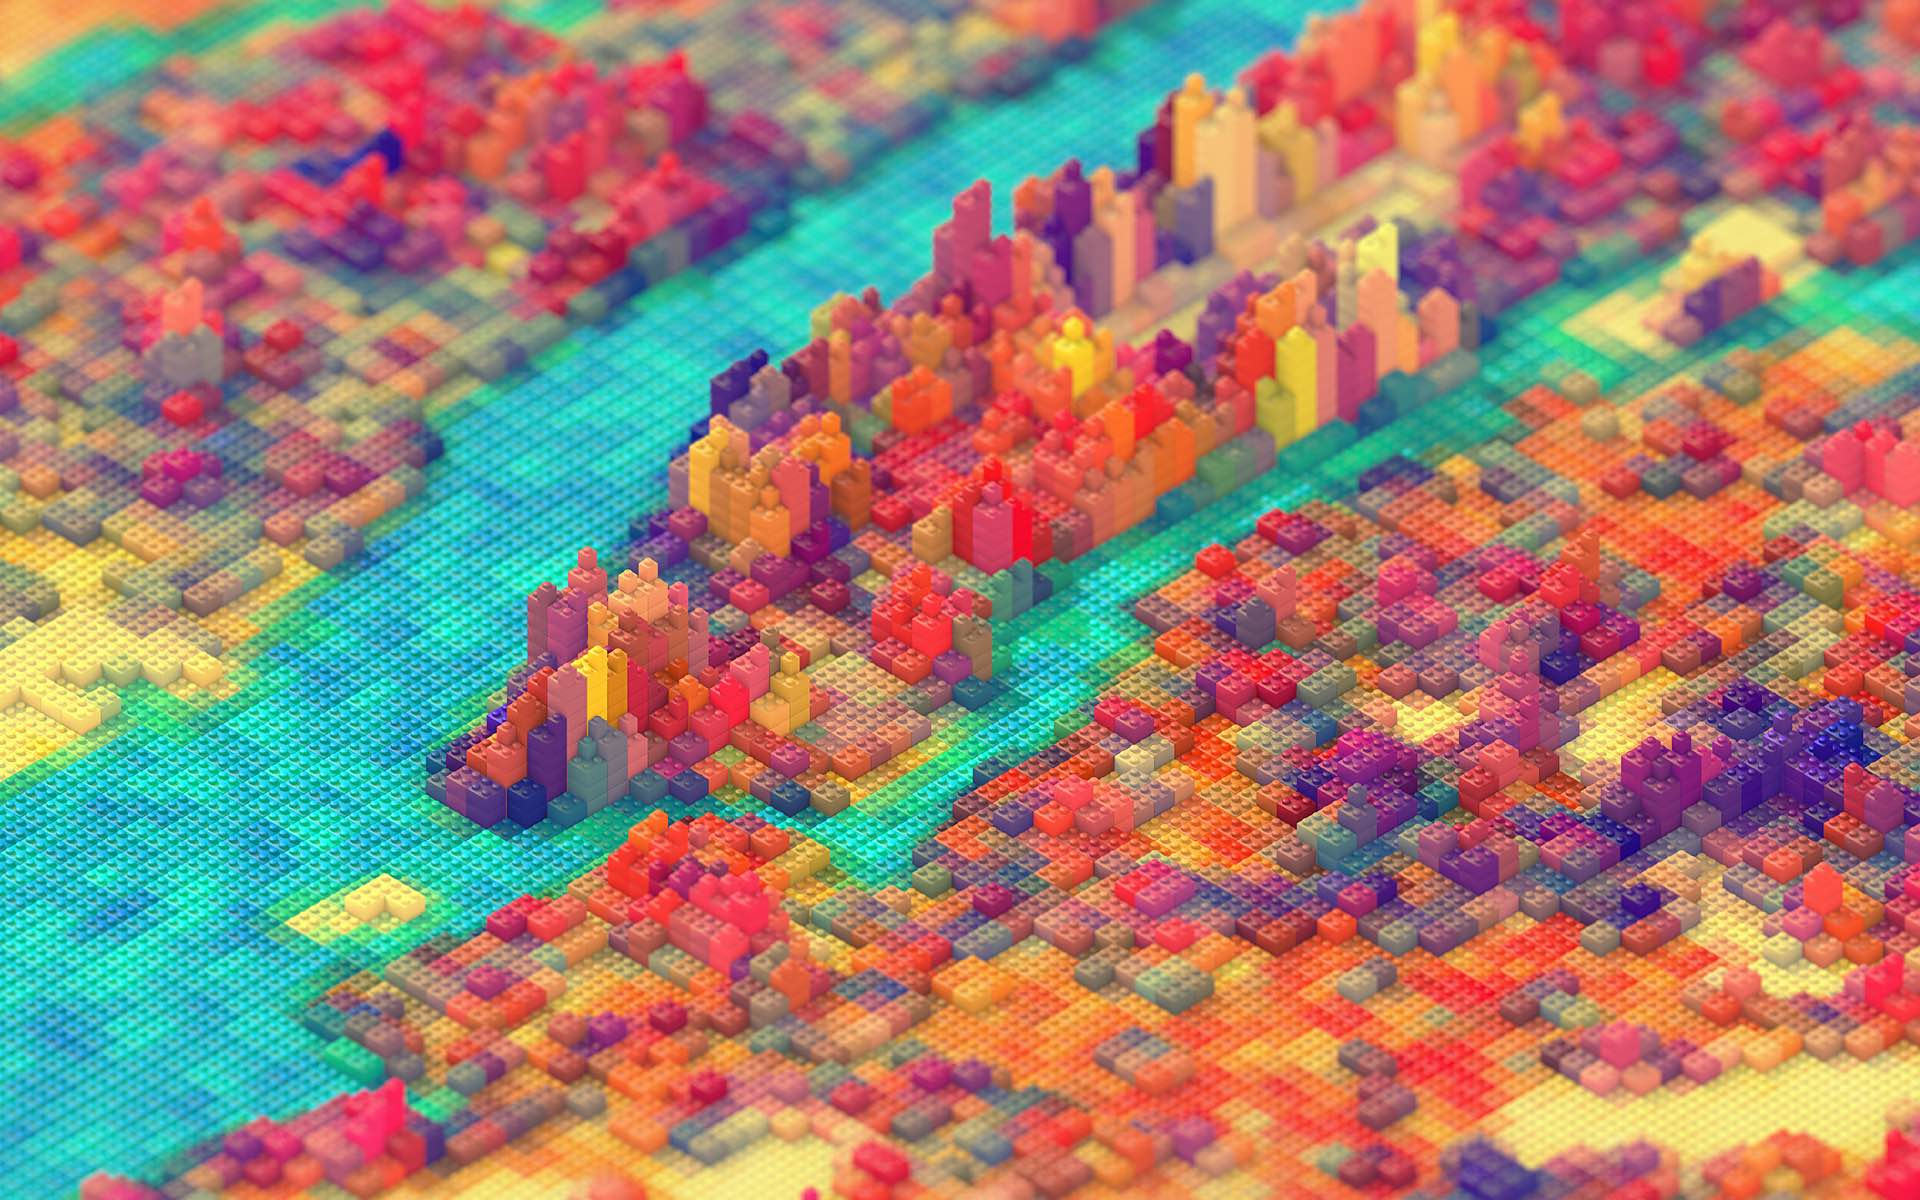 Lego New York print by J.R. Schmidt (Prices vary based on size and material)